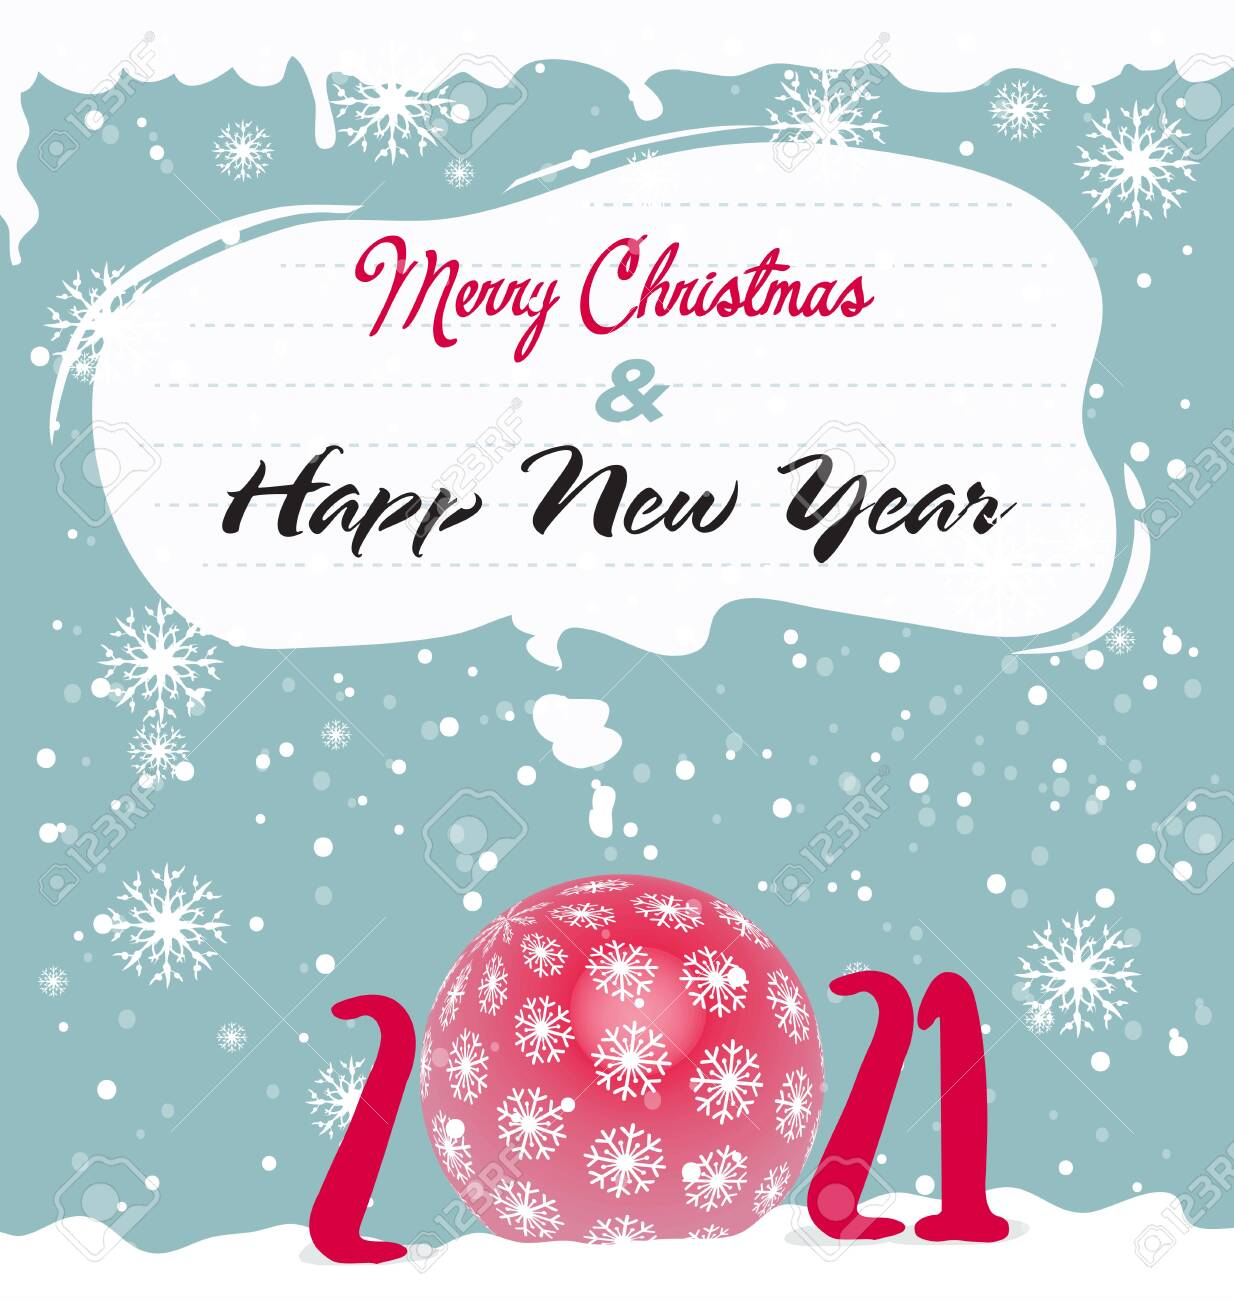 Merry Christmas 2021 Clipart Happy New Year And Merry Christmas 2021 Royalty Free Cliparts Vectors And Stock Illustration Image 144438673